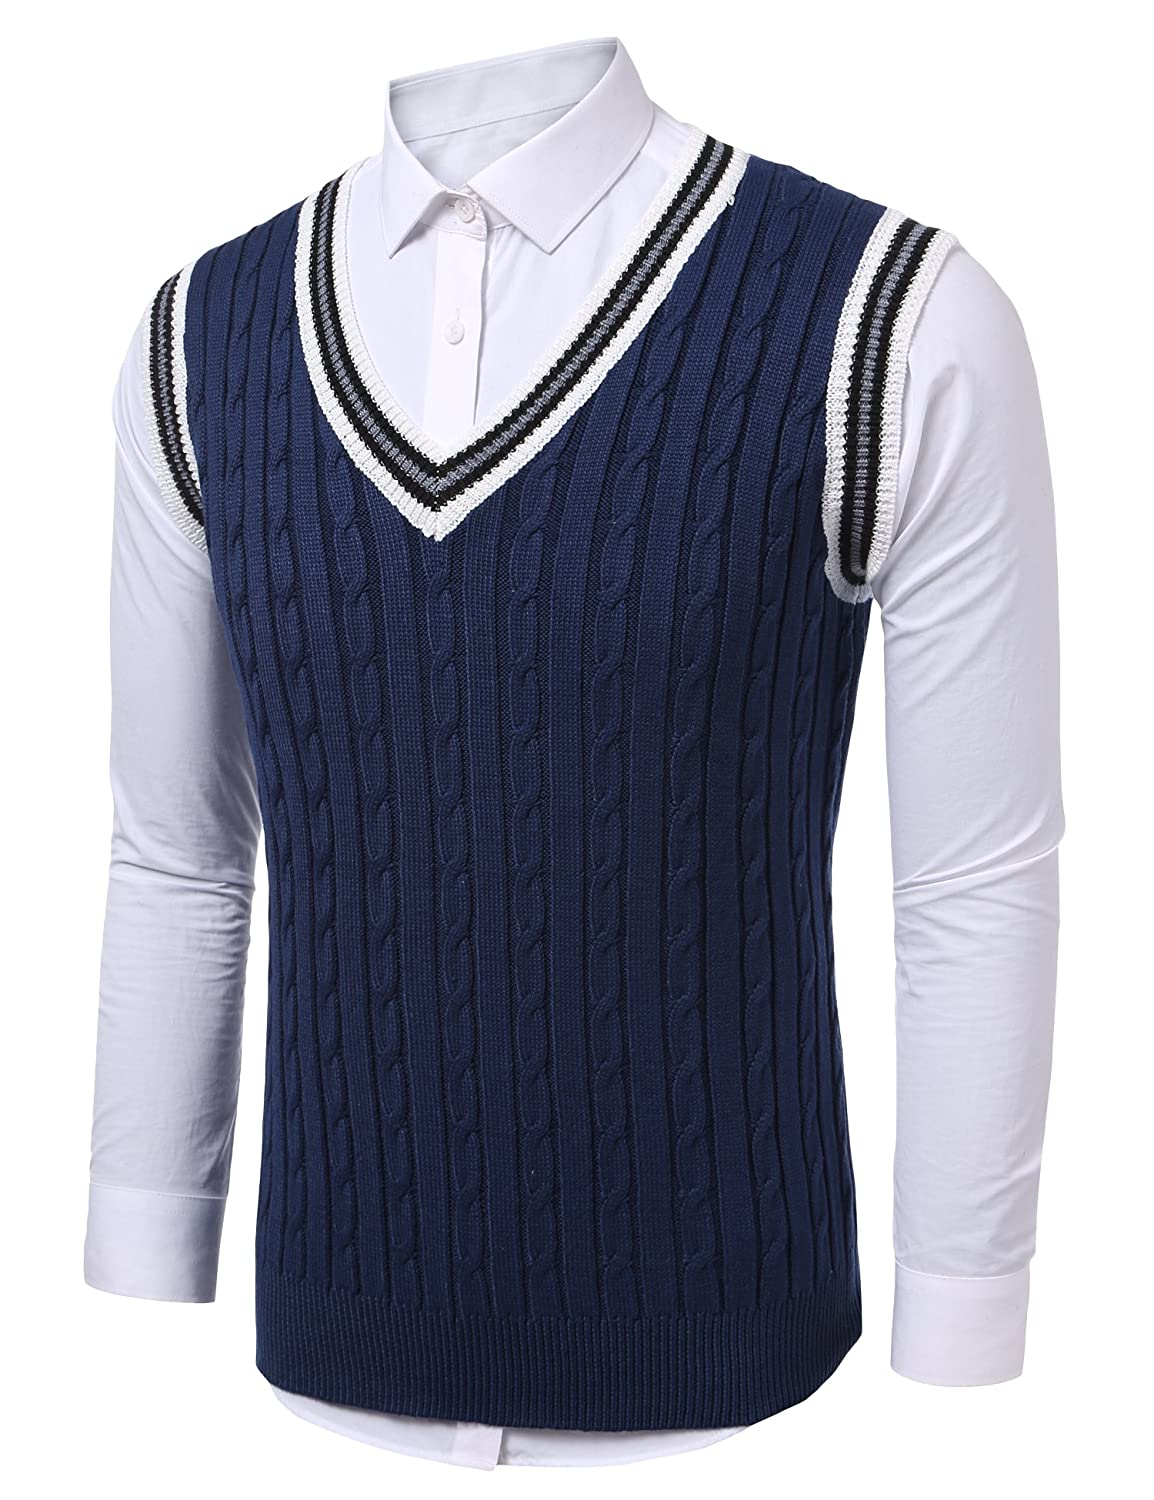 Men's Vintage Sweaters – 1920s to 1960s Retro Jumpers Coofandy Mens Casual Knitted Sweater Slim Fit Pullover Cable Sweater Links-Vest $27.99 AT vintagedancer.com